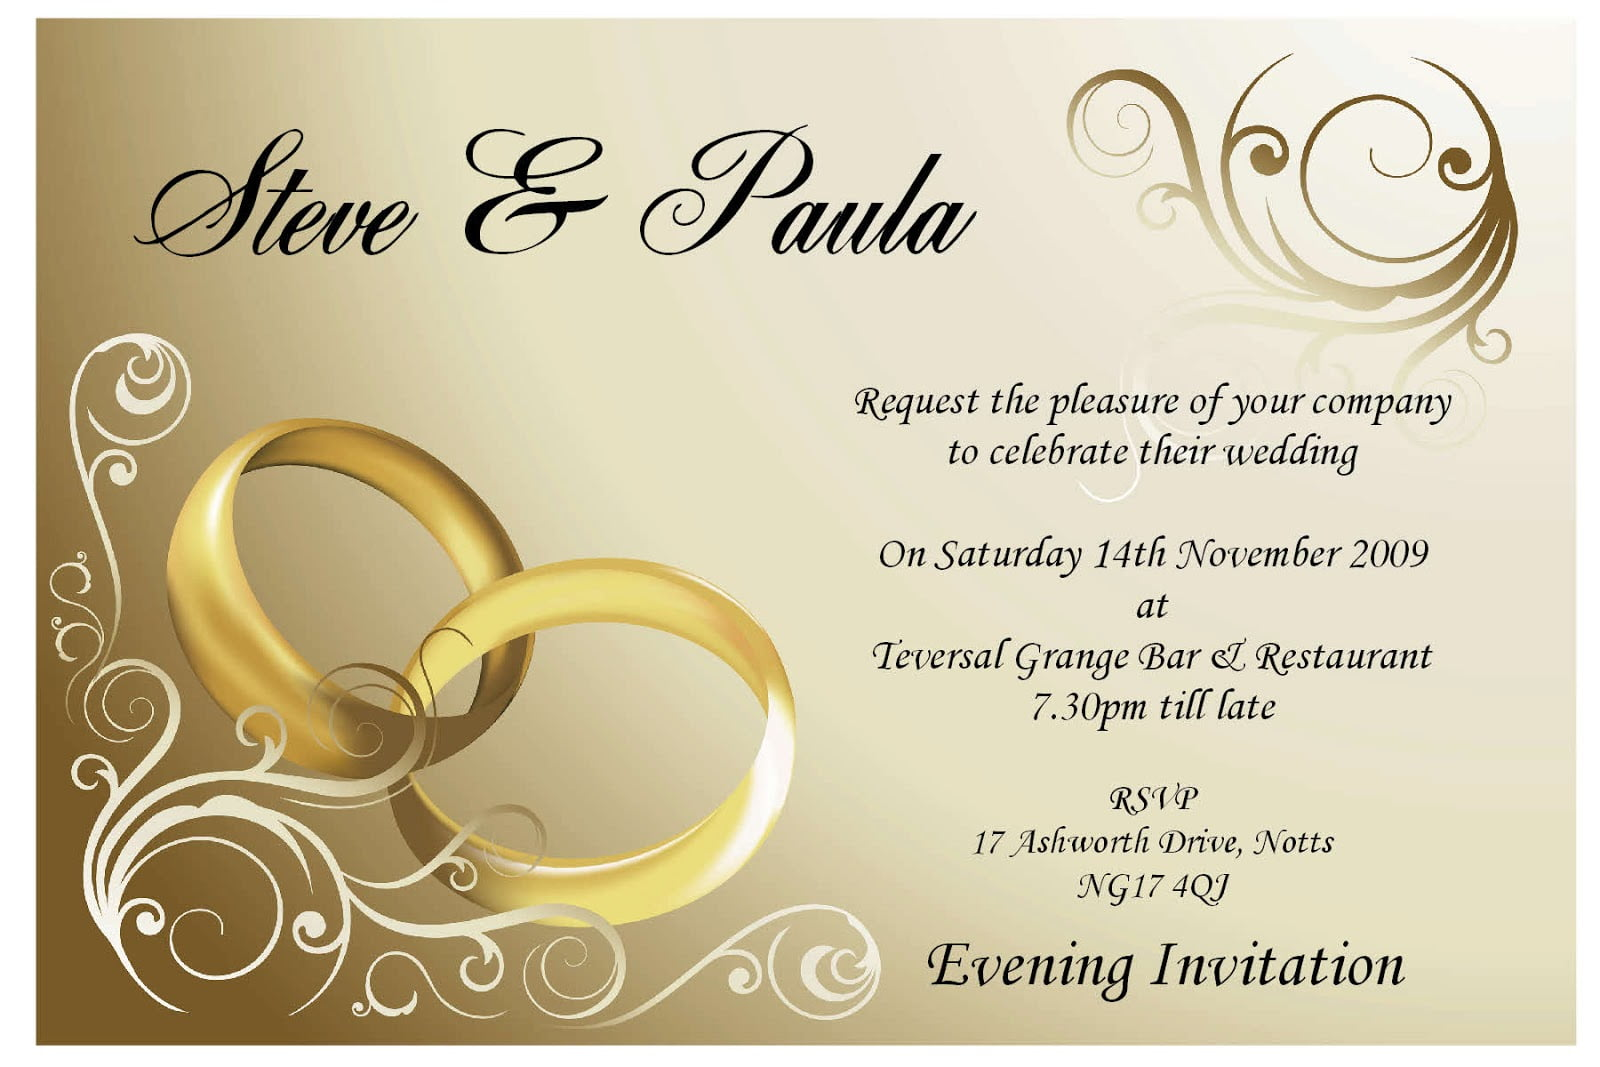 Wedding Card Invitation And Get Inspiration To Create The Wedding